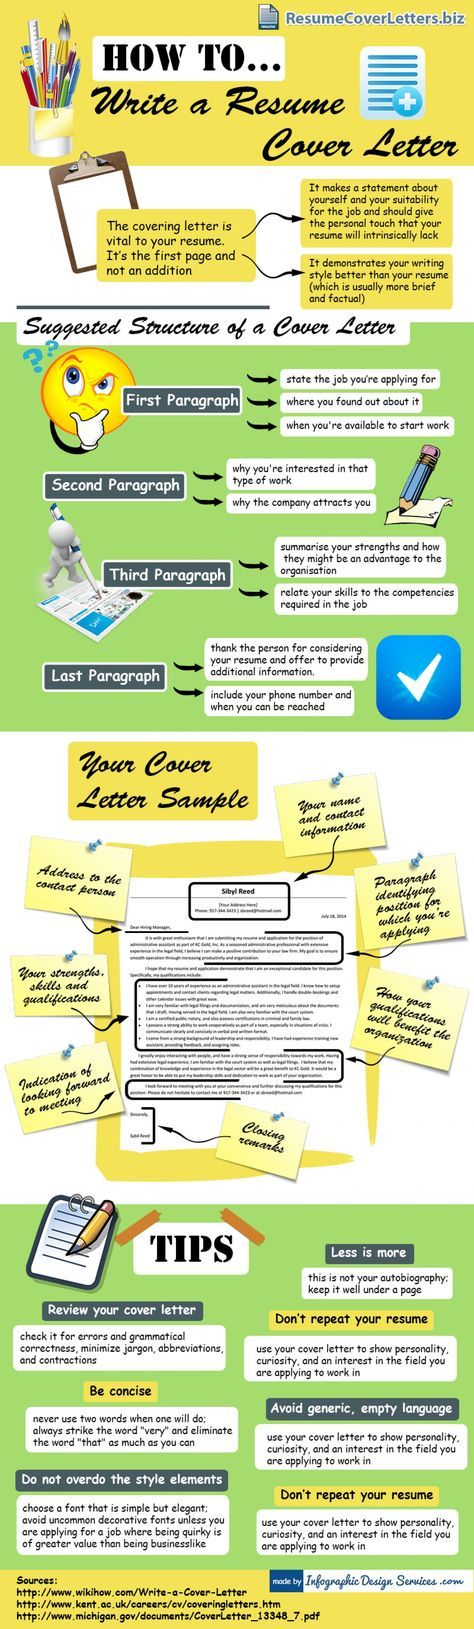 Best 20+ Resume writing tips ideas on Pinterest Cv writing tips - a resume letter